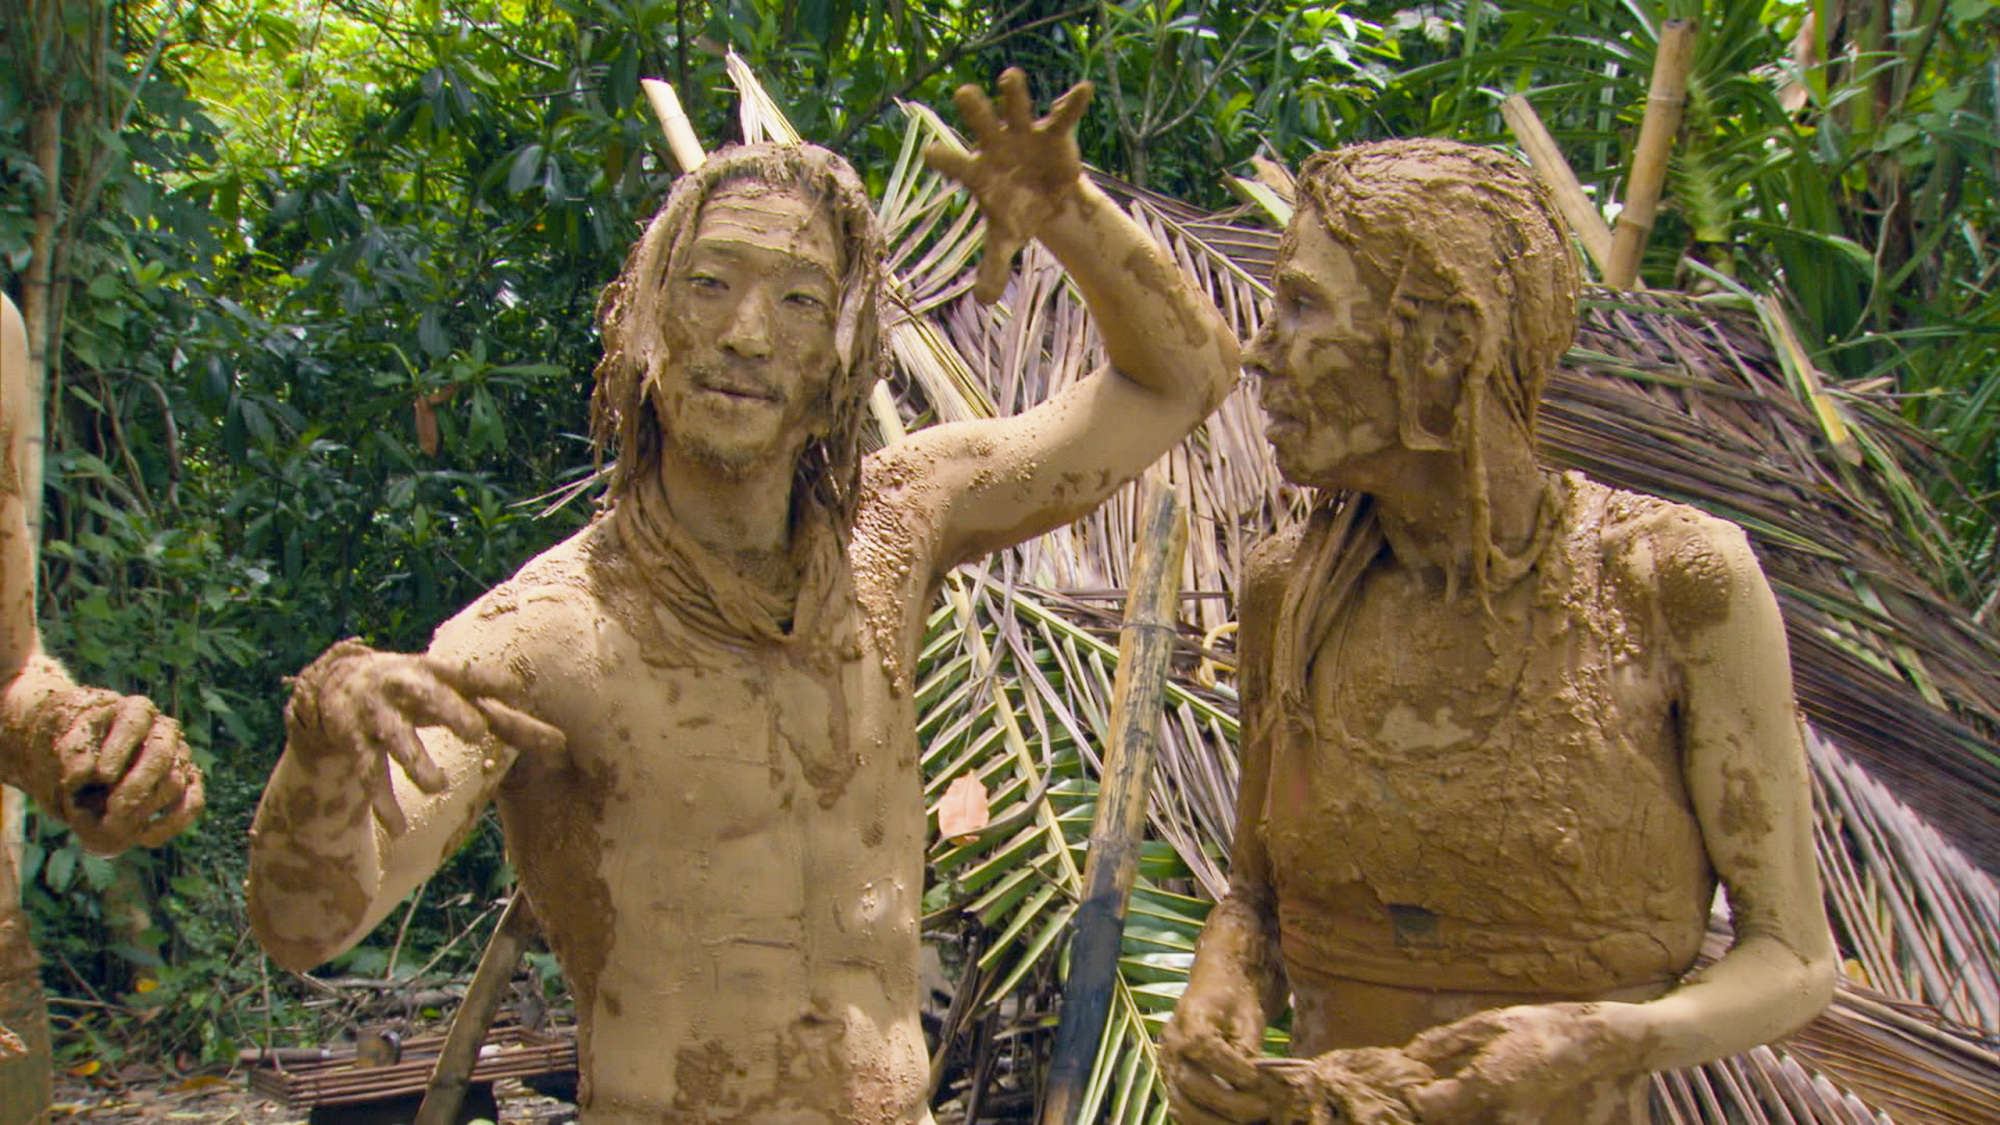 Covered in mud in Season 28 Episode 12